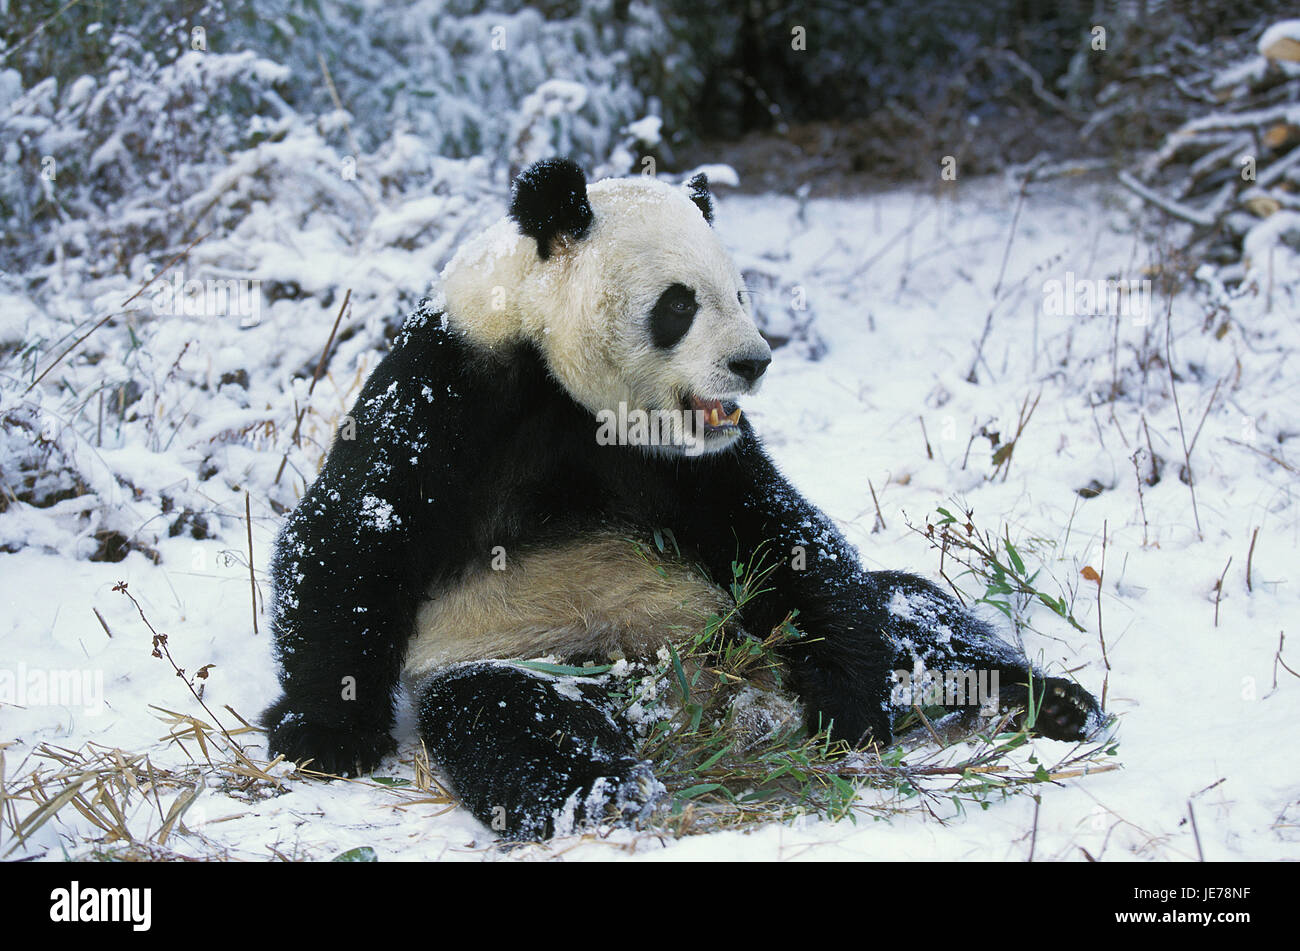 Big panda, Ailuropoda melanoleuca, adult animal, eat, bamboo, Wolong reserve, China, - Stock Image